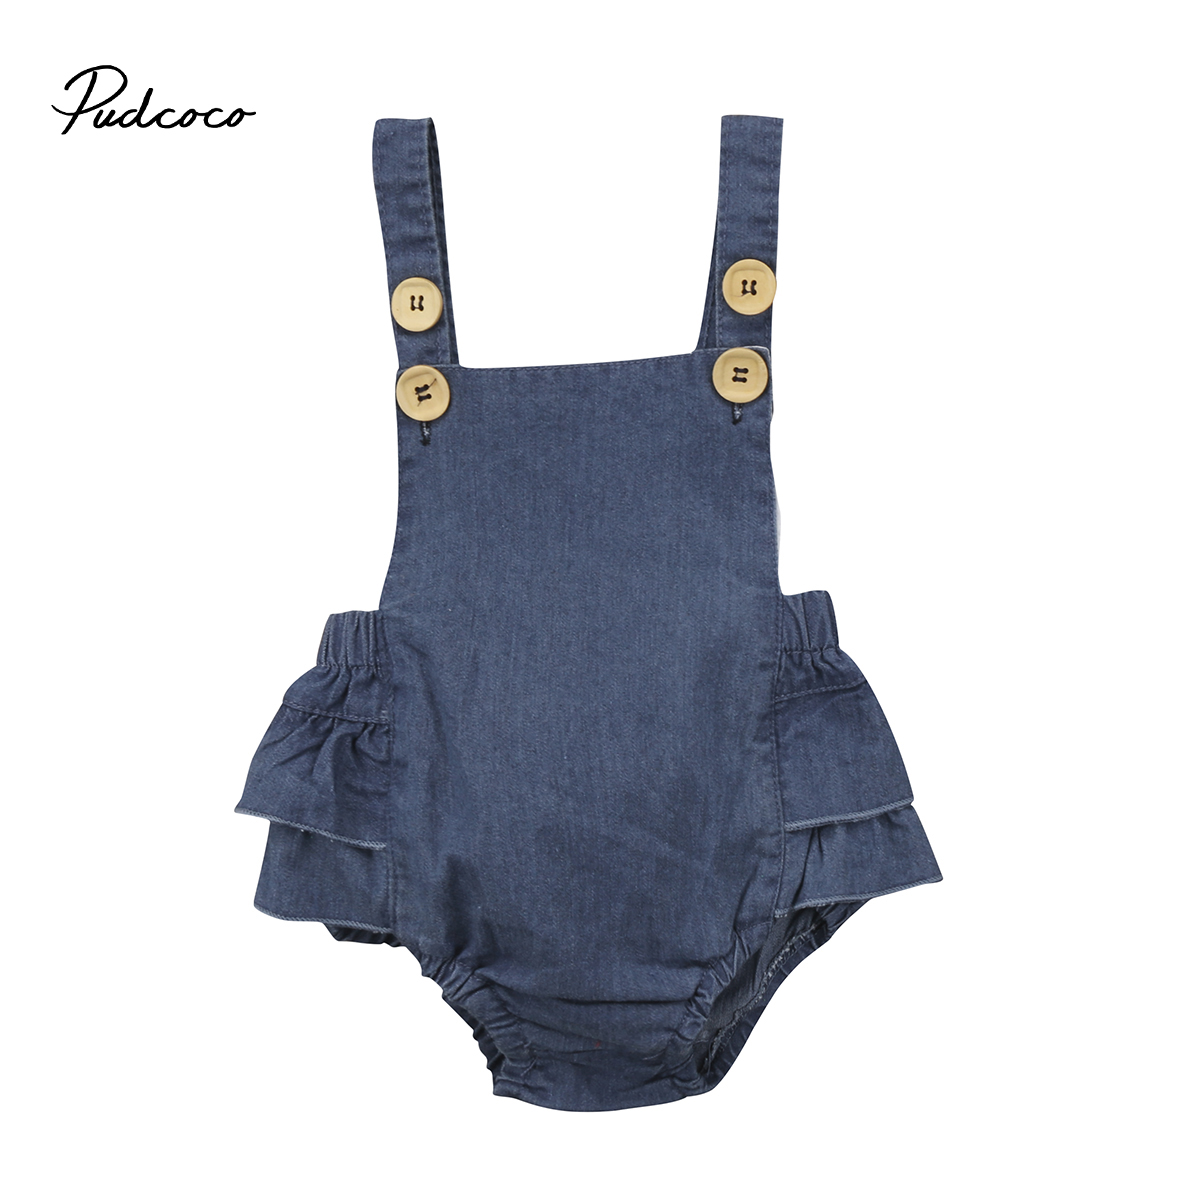 Pudcoco Newborn Infant Baby Girls Denim Romper Jumpsuit Playsuit One-Pieces Summer Clothes Sunsuit Outfits pudcoco newborn infant baby girls clothes short sleeve floral romper headband summer cute cotton one piece clothes